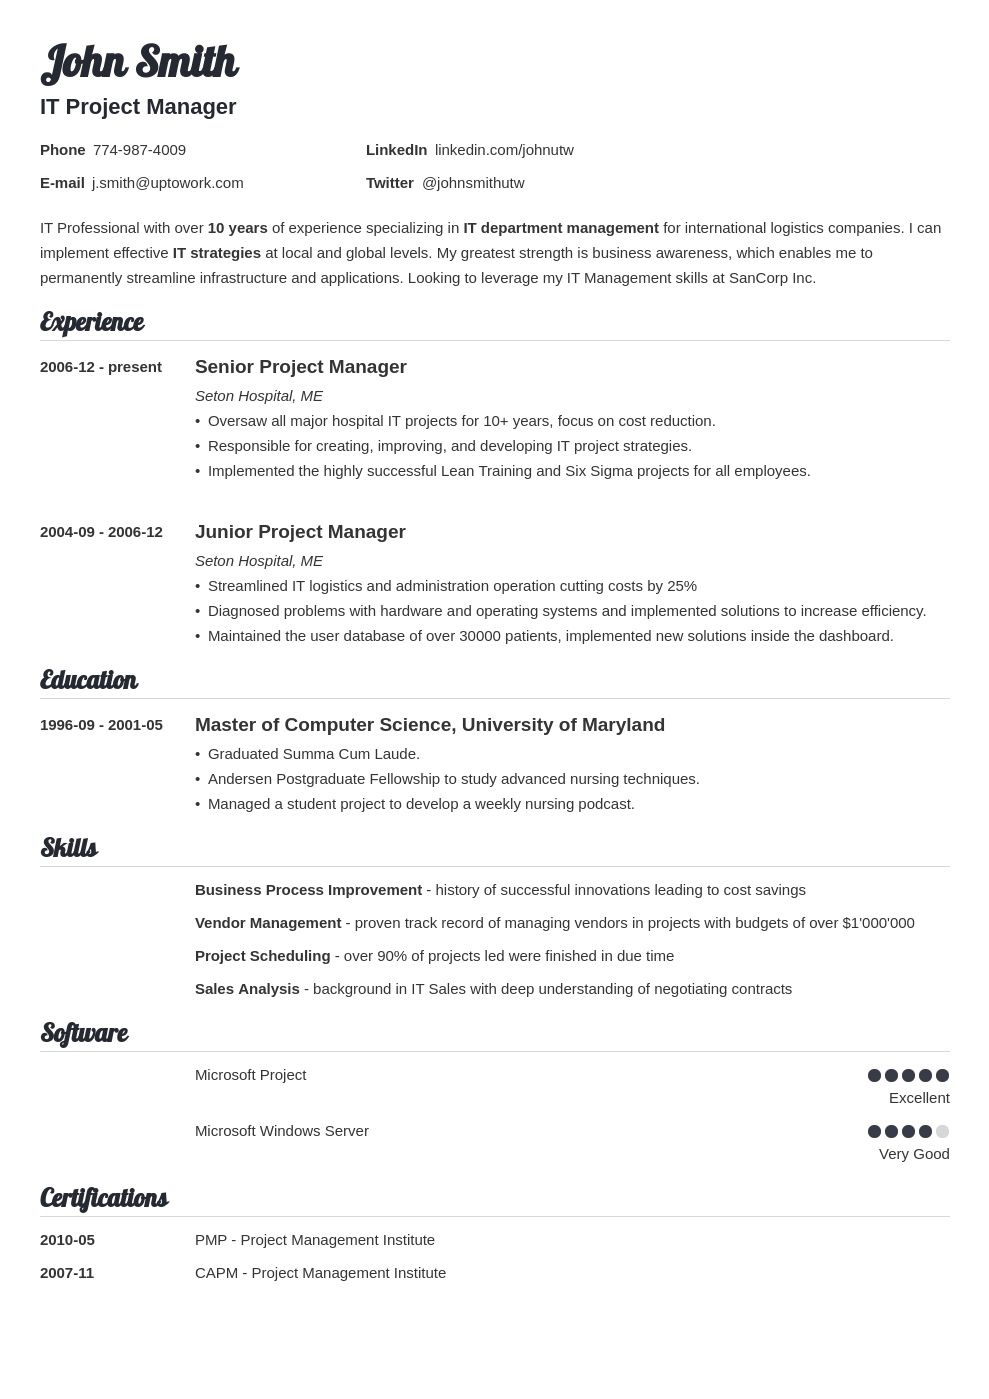 15 Blank Resume Templates Forms To Fill In And Download Within Free Free Professional Resume Template Resume Template Examples Resume Template Professional